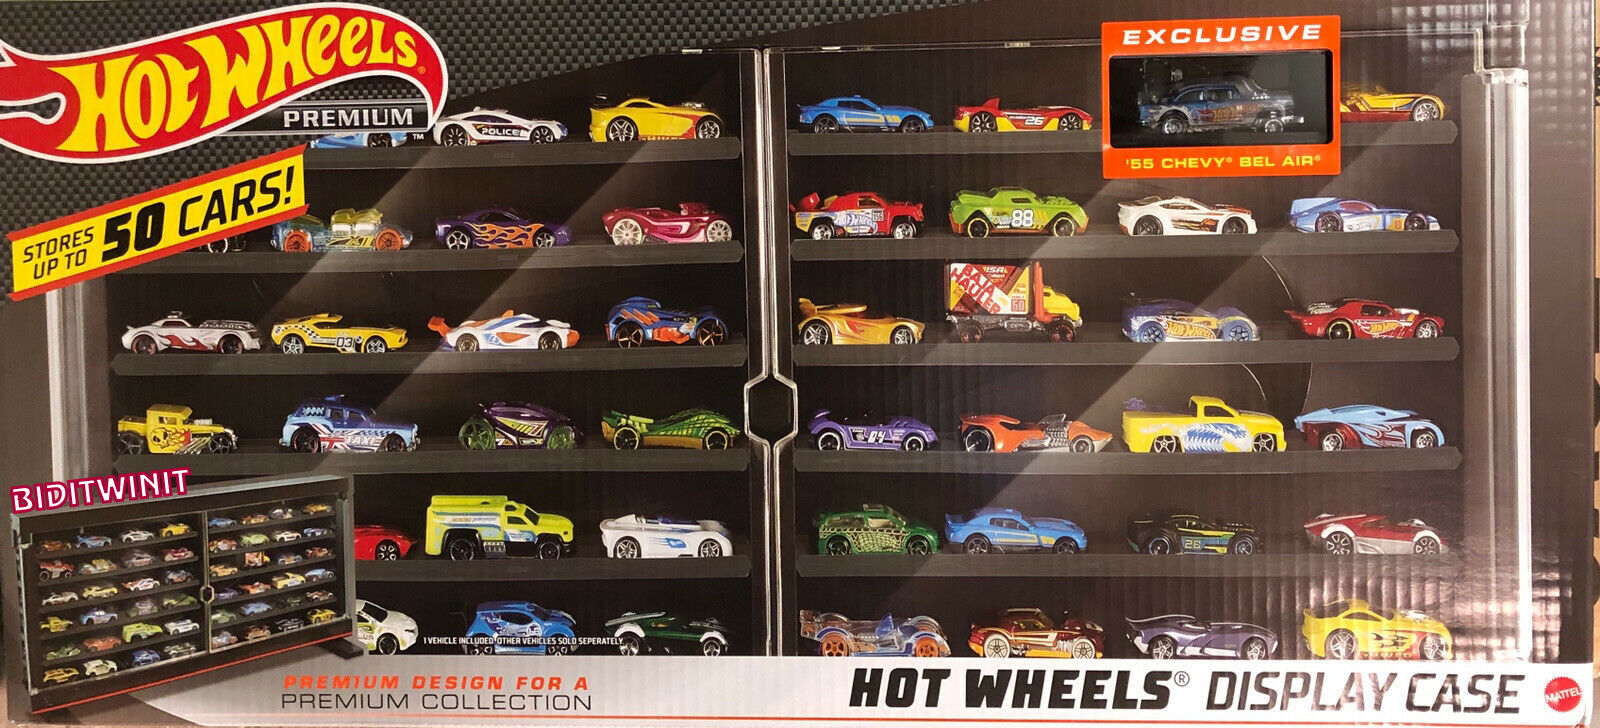 HOT WHEELS 2020 PREMIUM DISPLAY CASE 50 CARS EXCLUSIVE '55 CHEVY BEL AIR